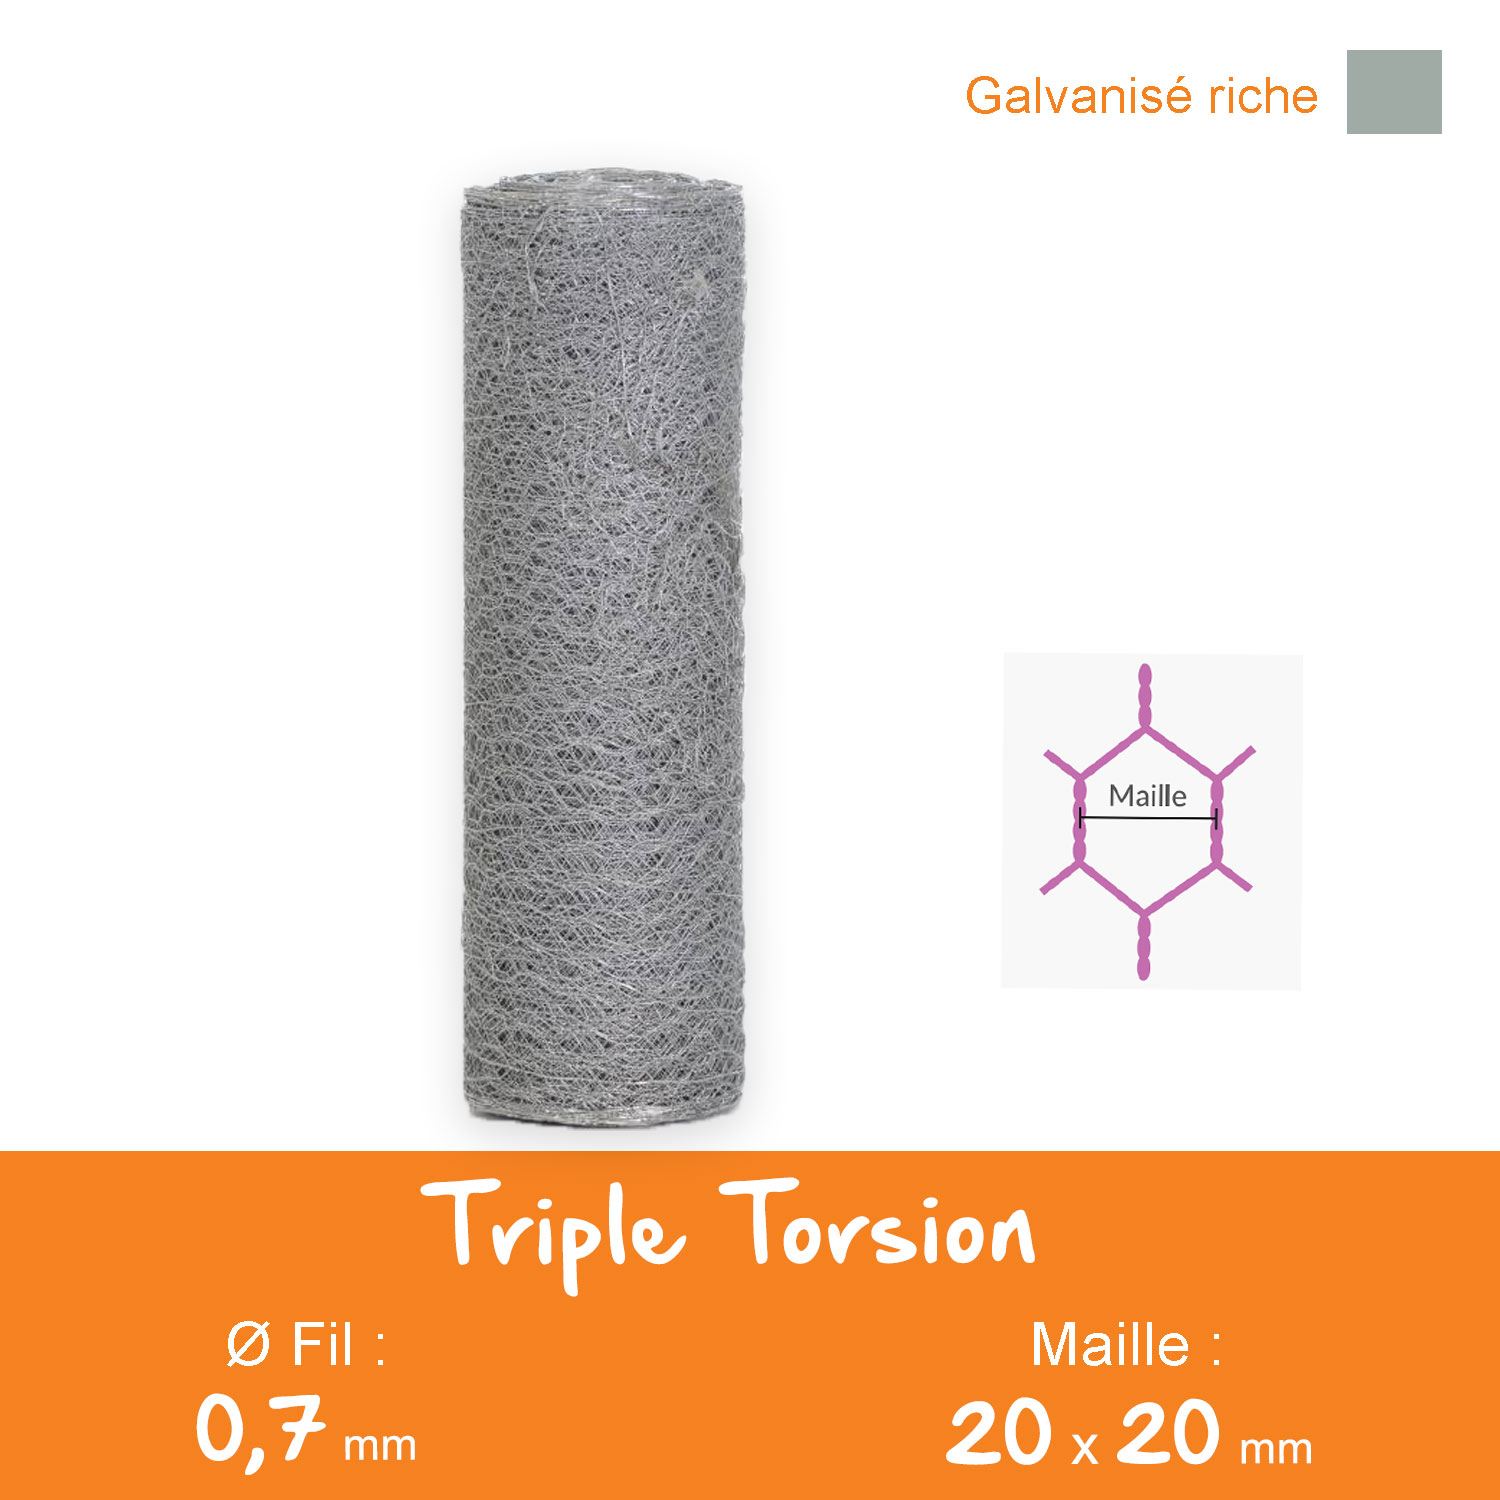 Triple Torsion Galvanisé - Maille 20 mm - Ø 0,7 mm